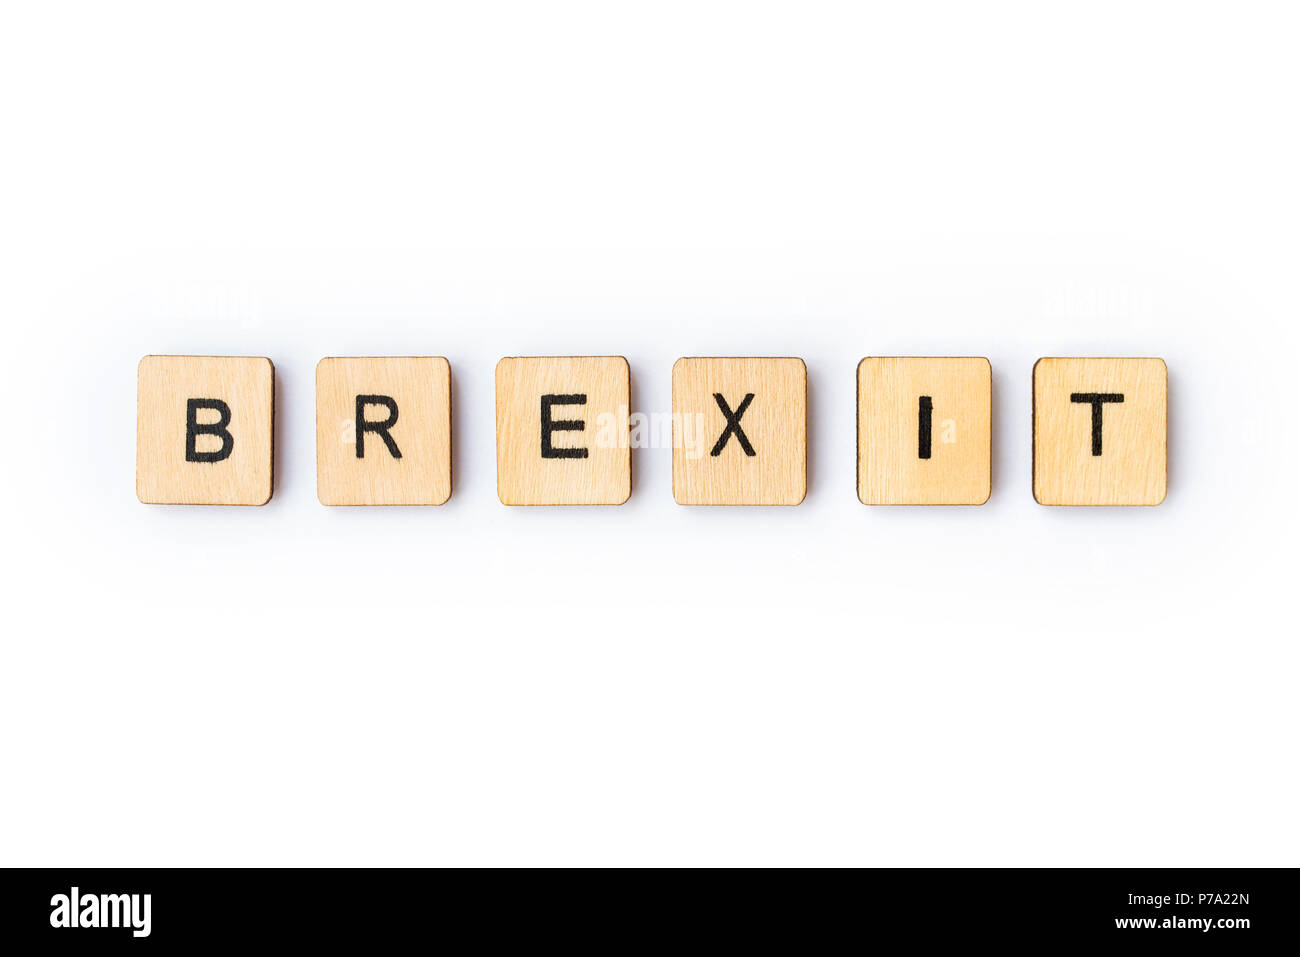 london uk june 28th 2018 the word brexit spelt out with wooden